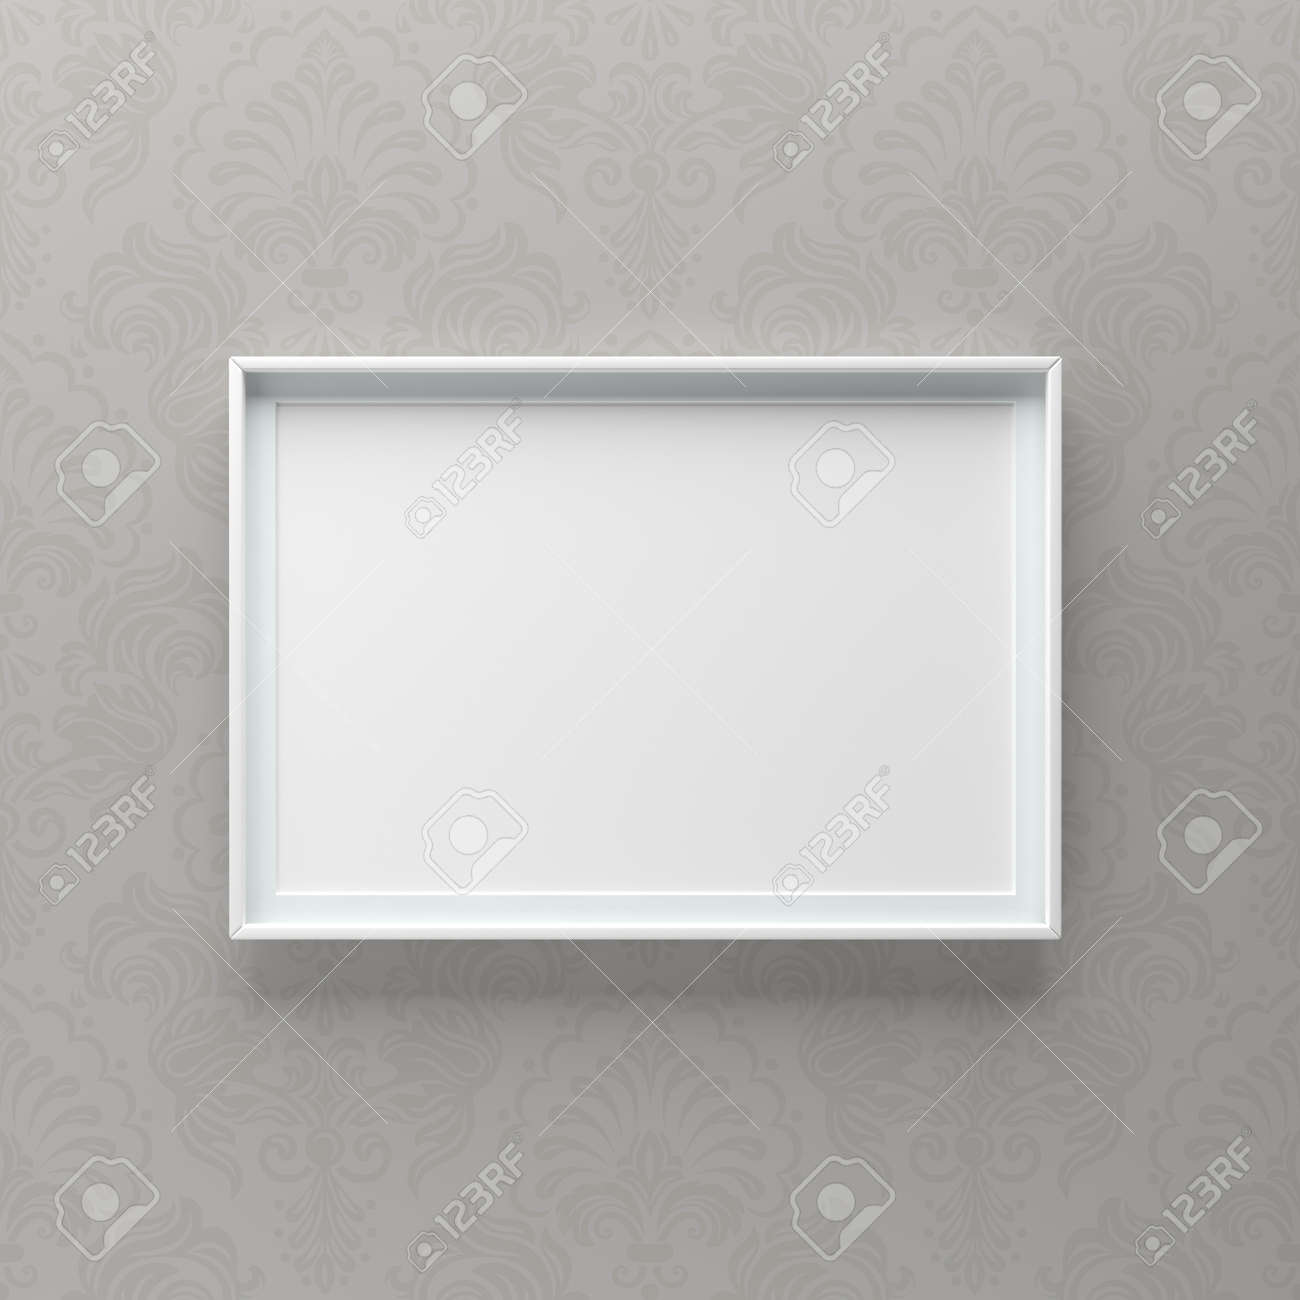 Elegant Picture Frame Standing On Gray Wall With Pattern Design Stock Photo Picture And Royalty Free Image Image 119387672